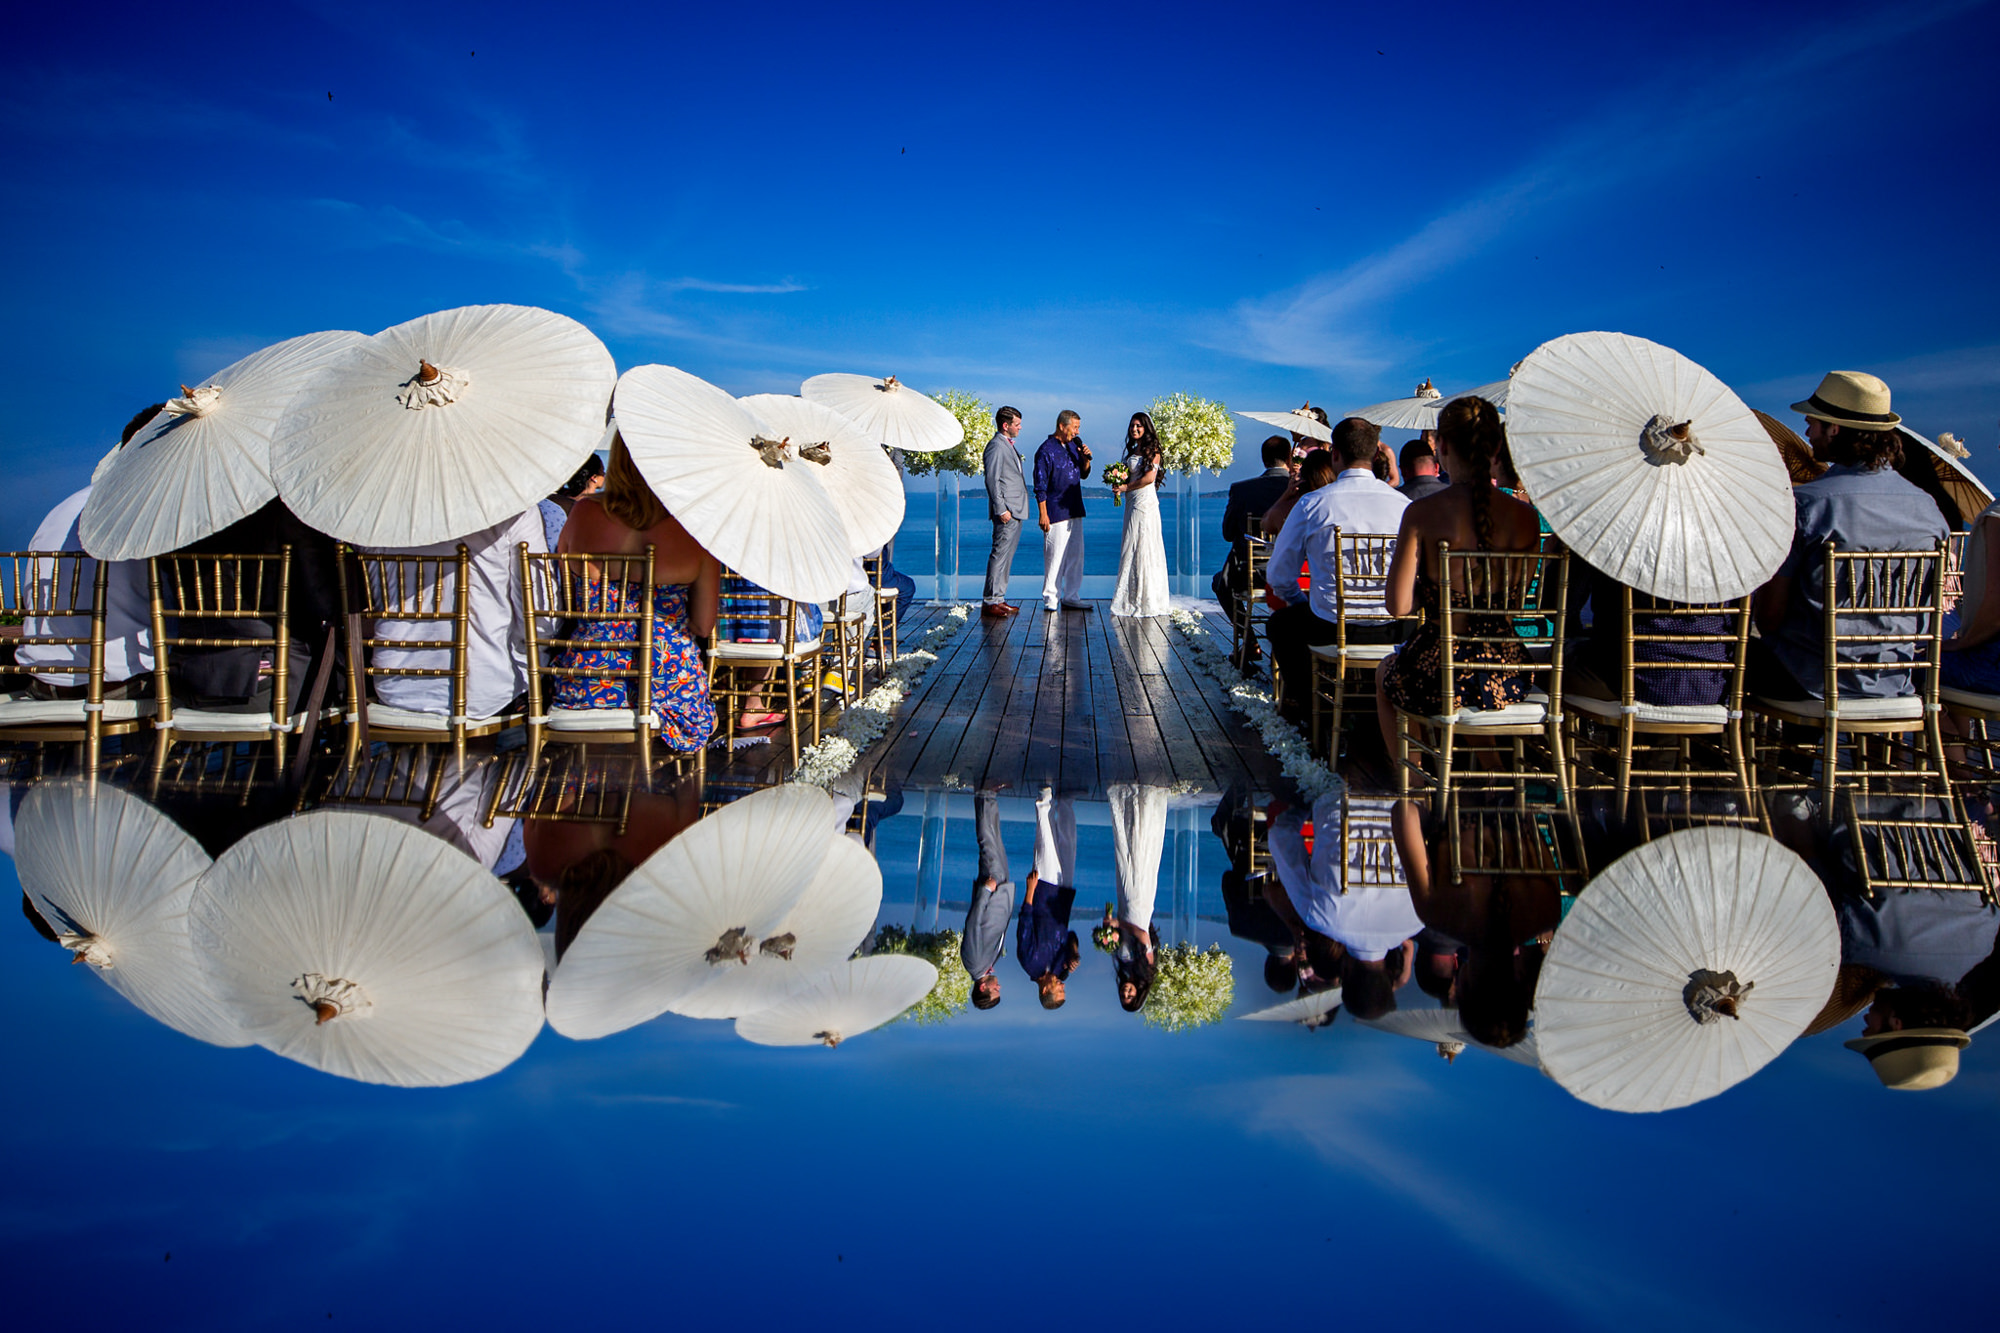 Waterfront ceremony with reflection and guests with white umbrellas - photo by Two Mann Studios